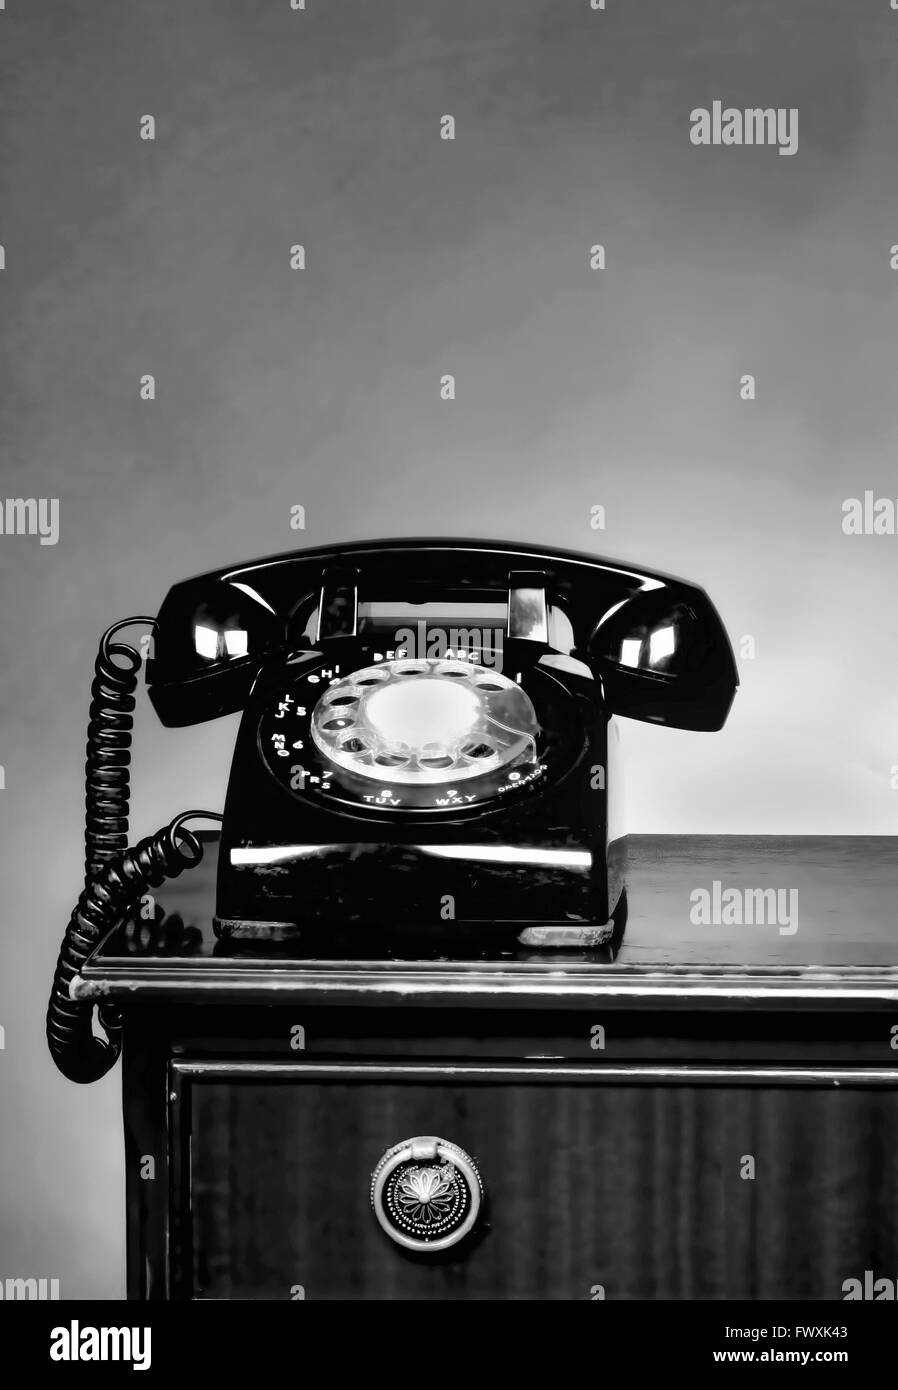 Old telephone with room for your type in black and white. - Stock Image